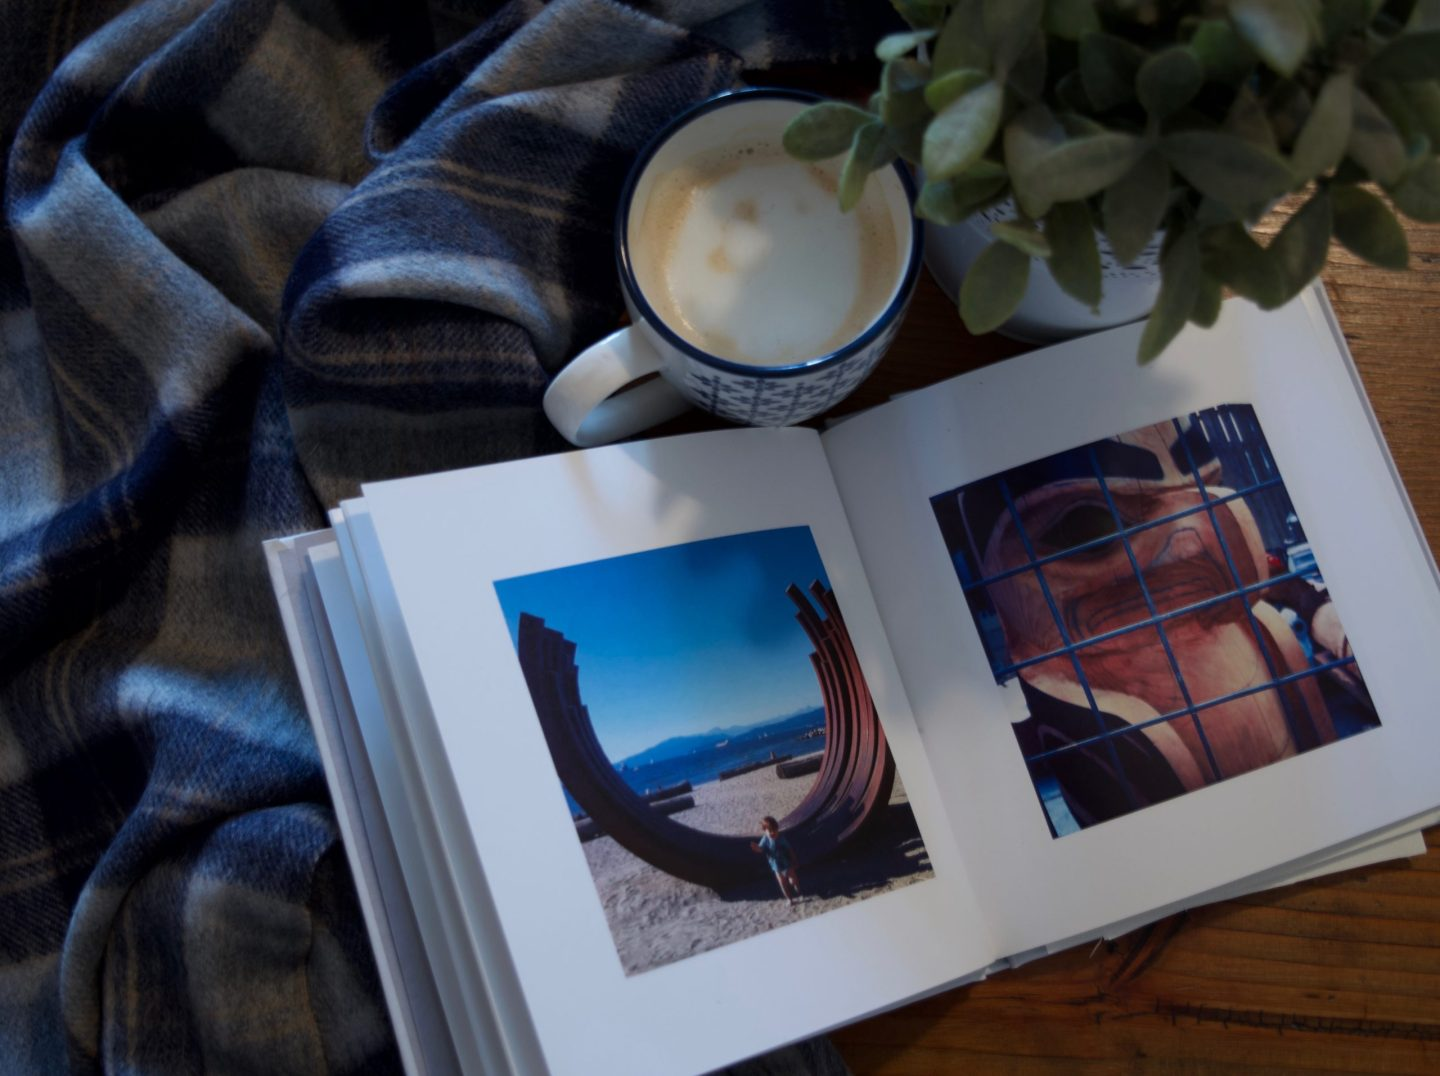 Photo books for travel gifts